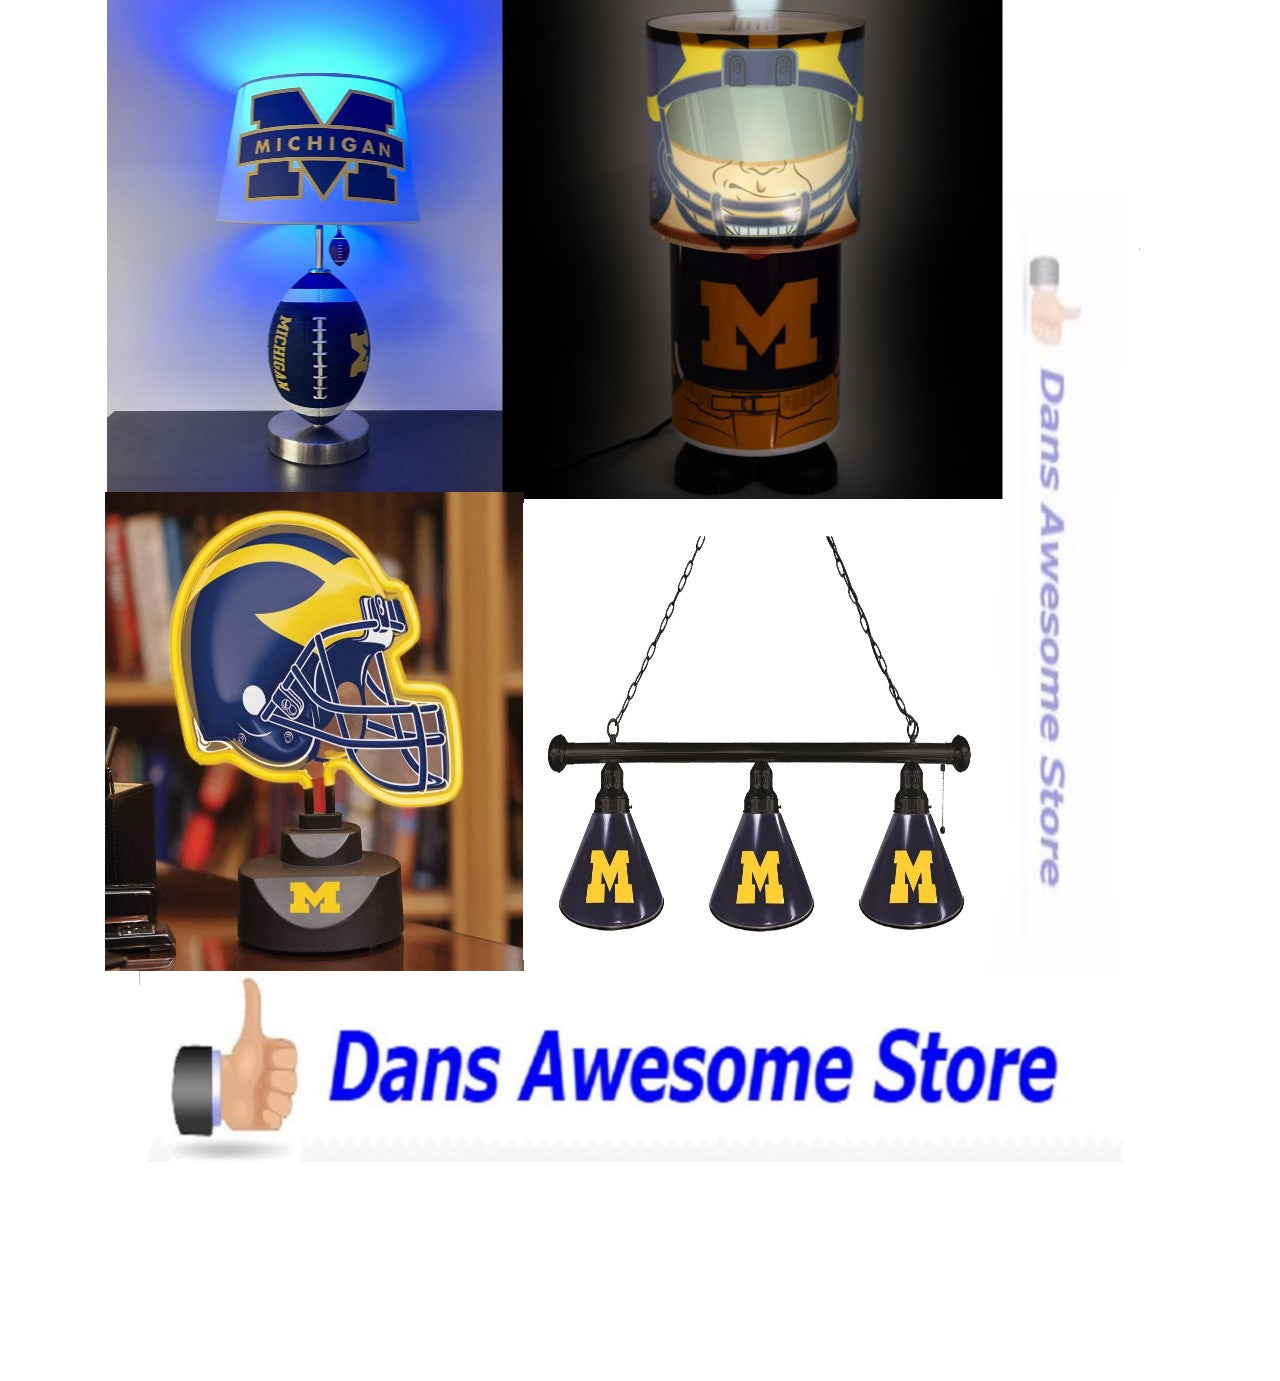 Michigan Wolverines Lamps - Dans Awesome Store